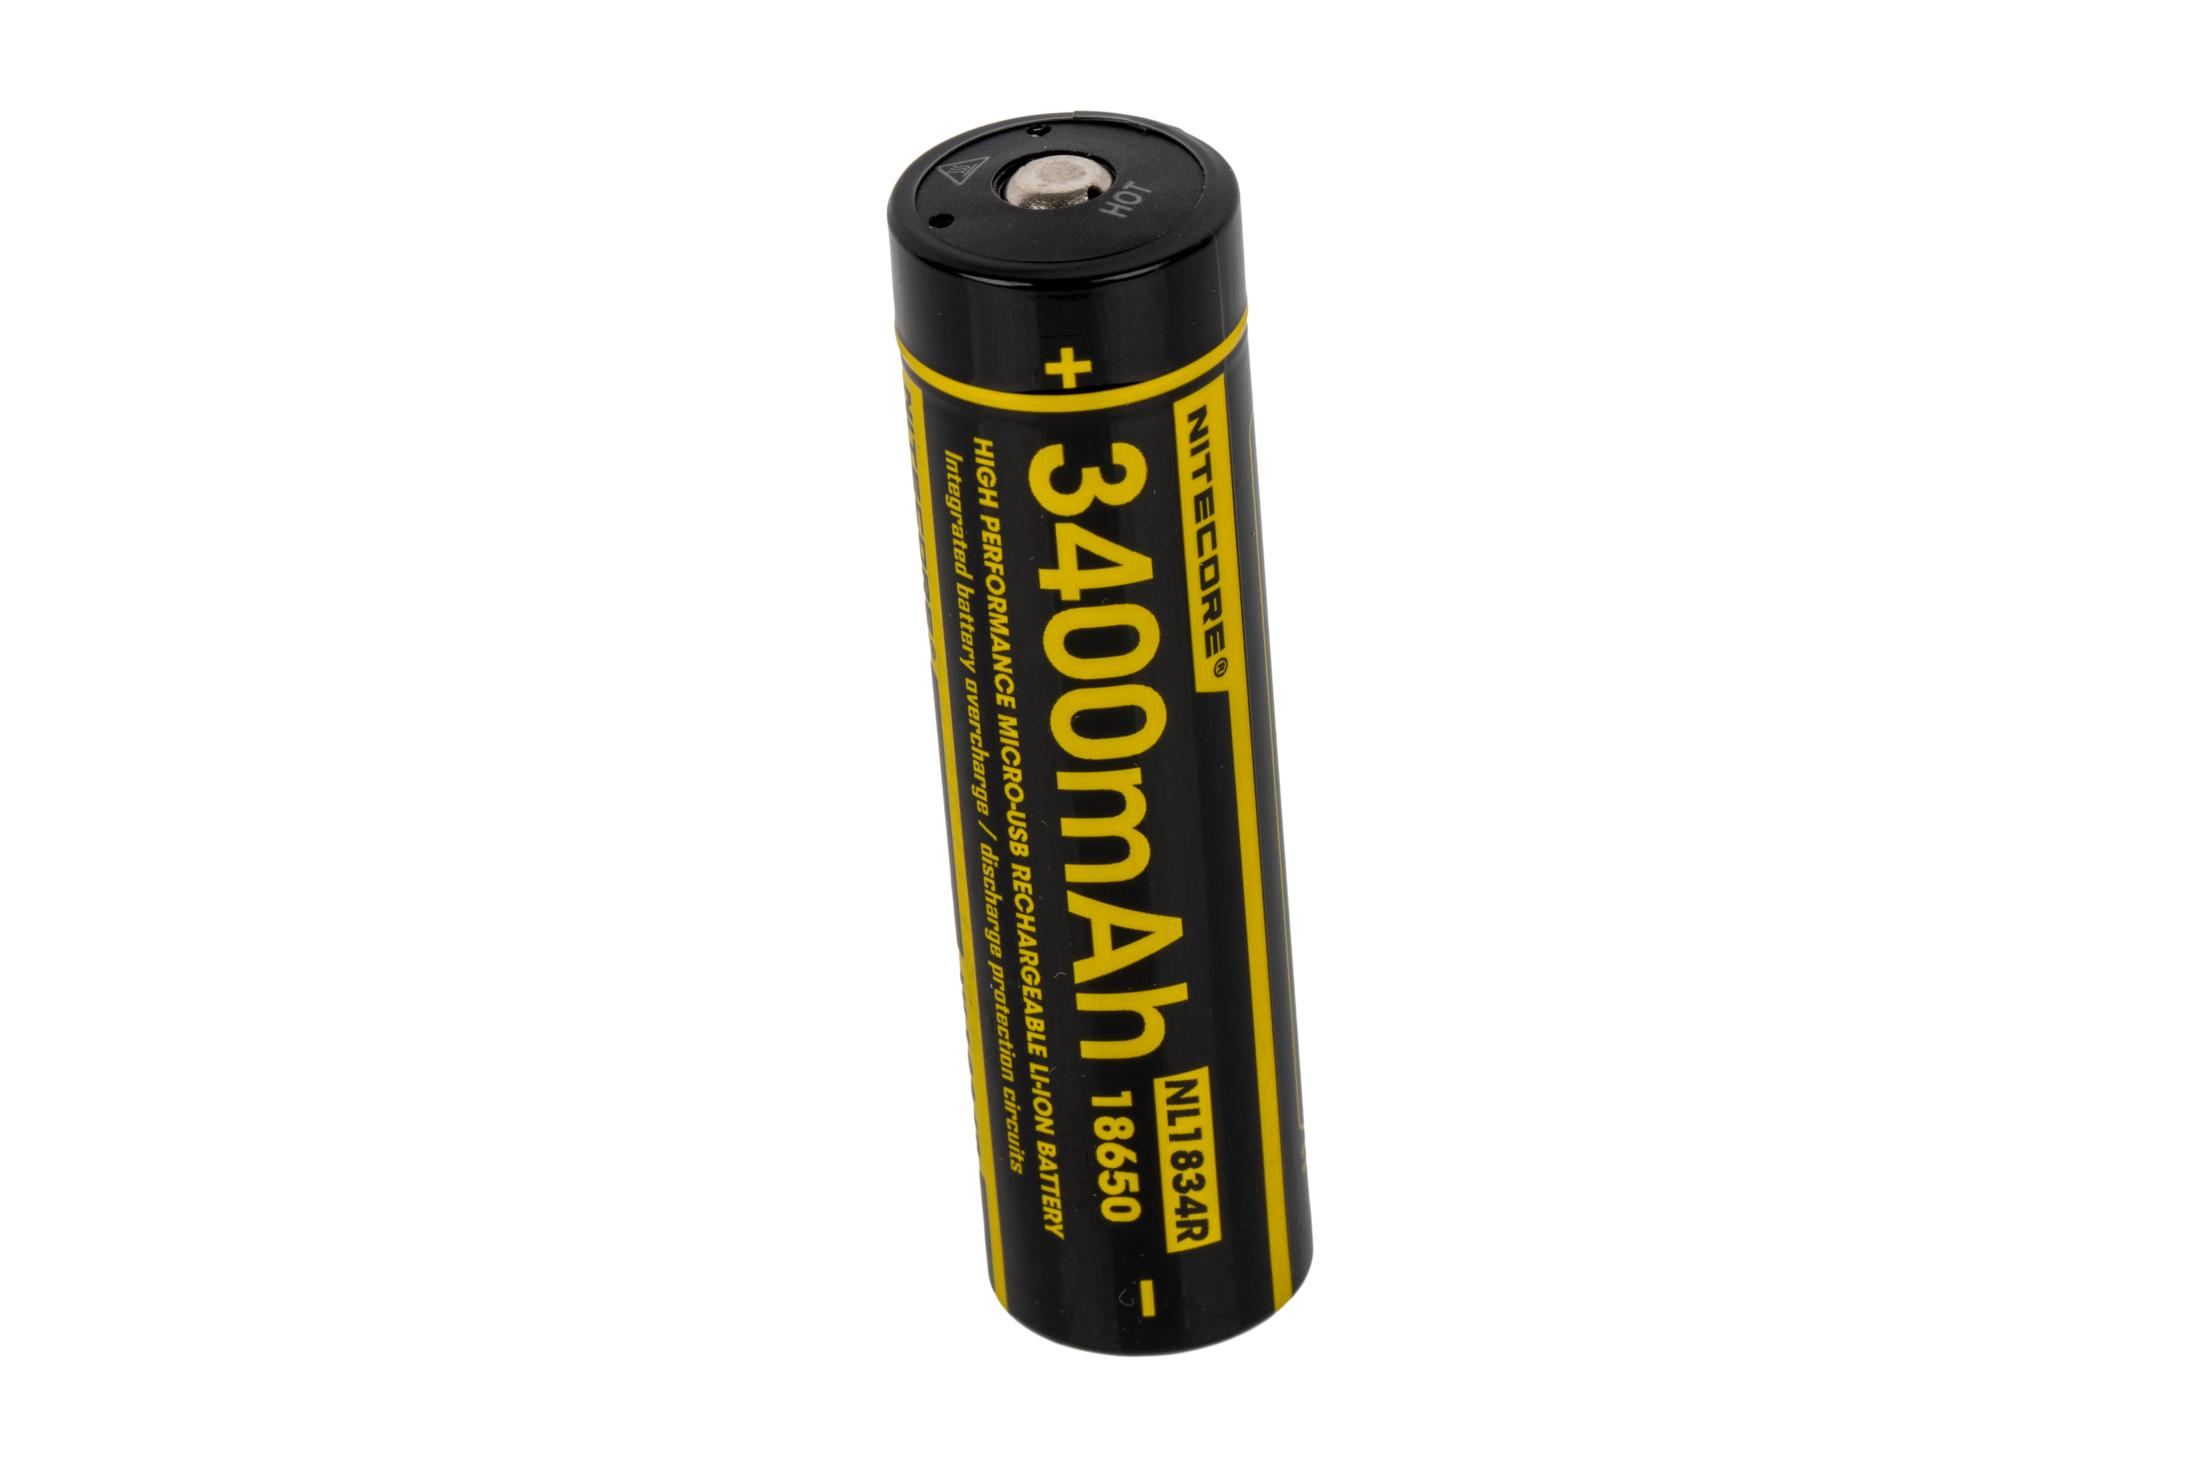 The Nitecore 18650 battery features USB rechargeability and 3400mAh capacity